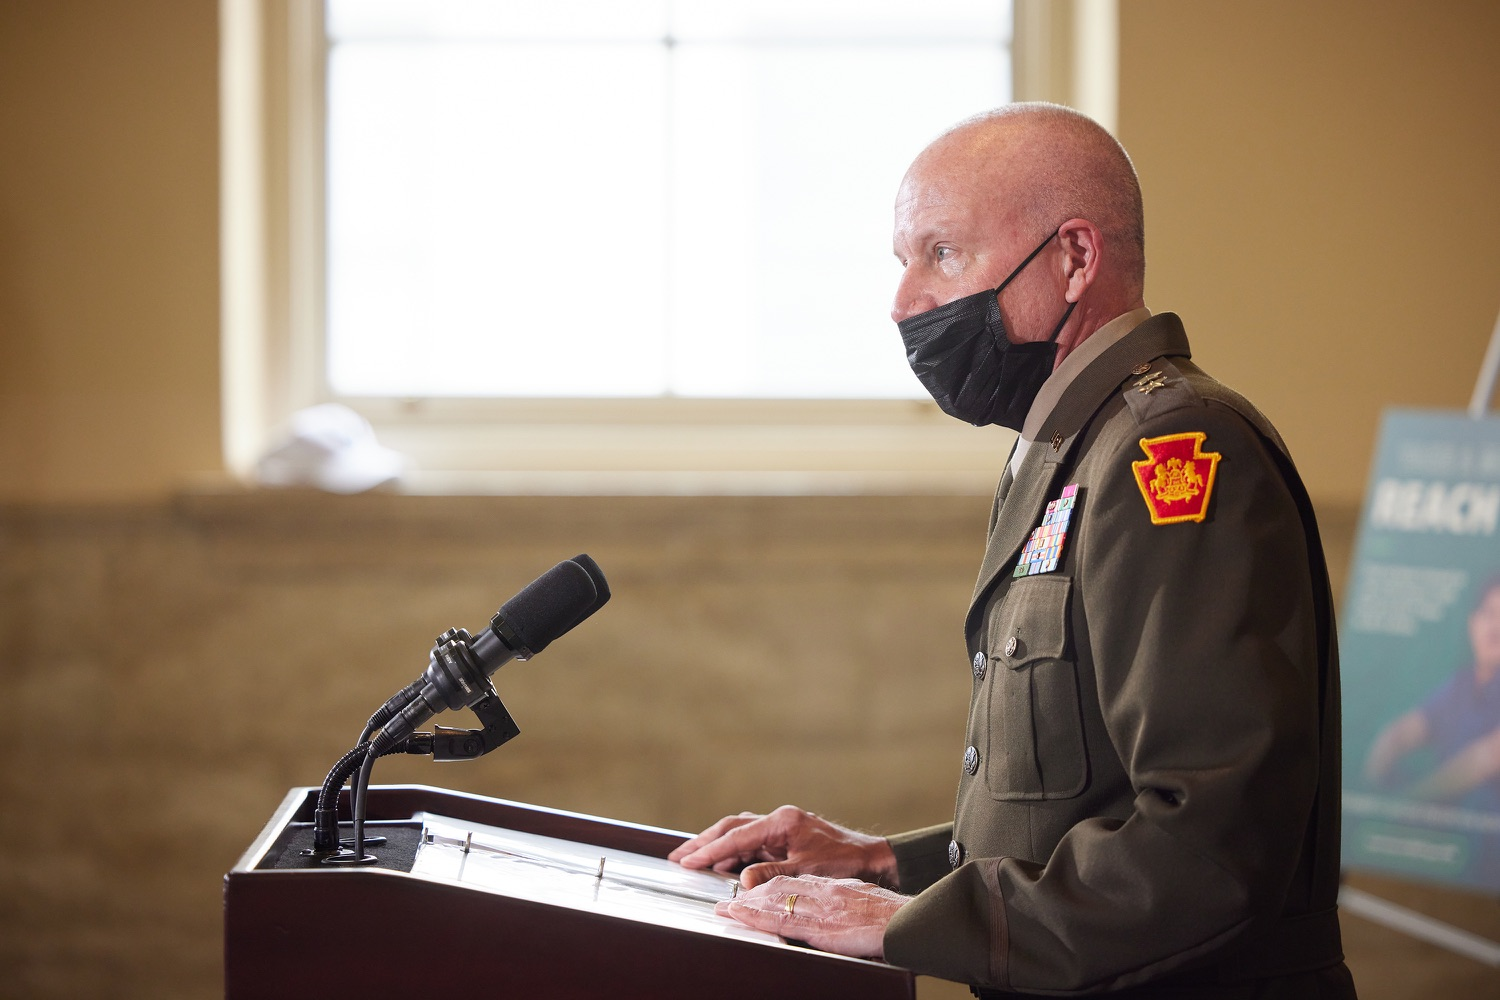 """<a href=""""https://filesource.wostreaming.net/commonwealthofpa/photo/19088_dmva_suicidePrevention_dz_017.jpg"""" target=""""_blank"""">⇣Download Photo<br></a>Adjutant General of Pennsylvania Major General Mark J. Schindler speaks to the press.  Members of the Wolf administration gathered today at the YWCA Greater  Harrisburg to raise awareness about veteran suicide, a health crisis taking the lives of about 20  veterans a day nationwide. The event was held in recognition of September being National Suicide Prevention Month.  Harrisburg, PA   Sept. 9, 2021.."""